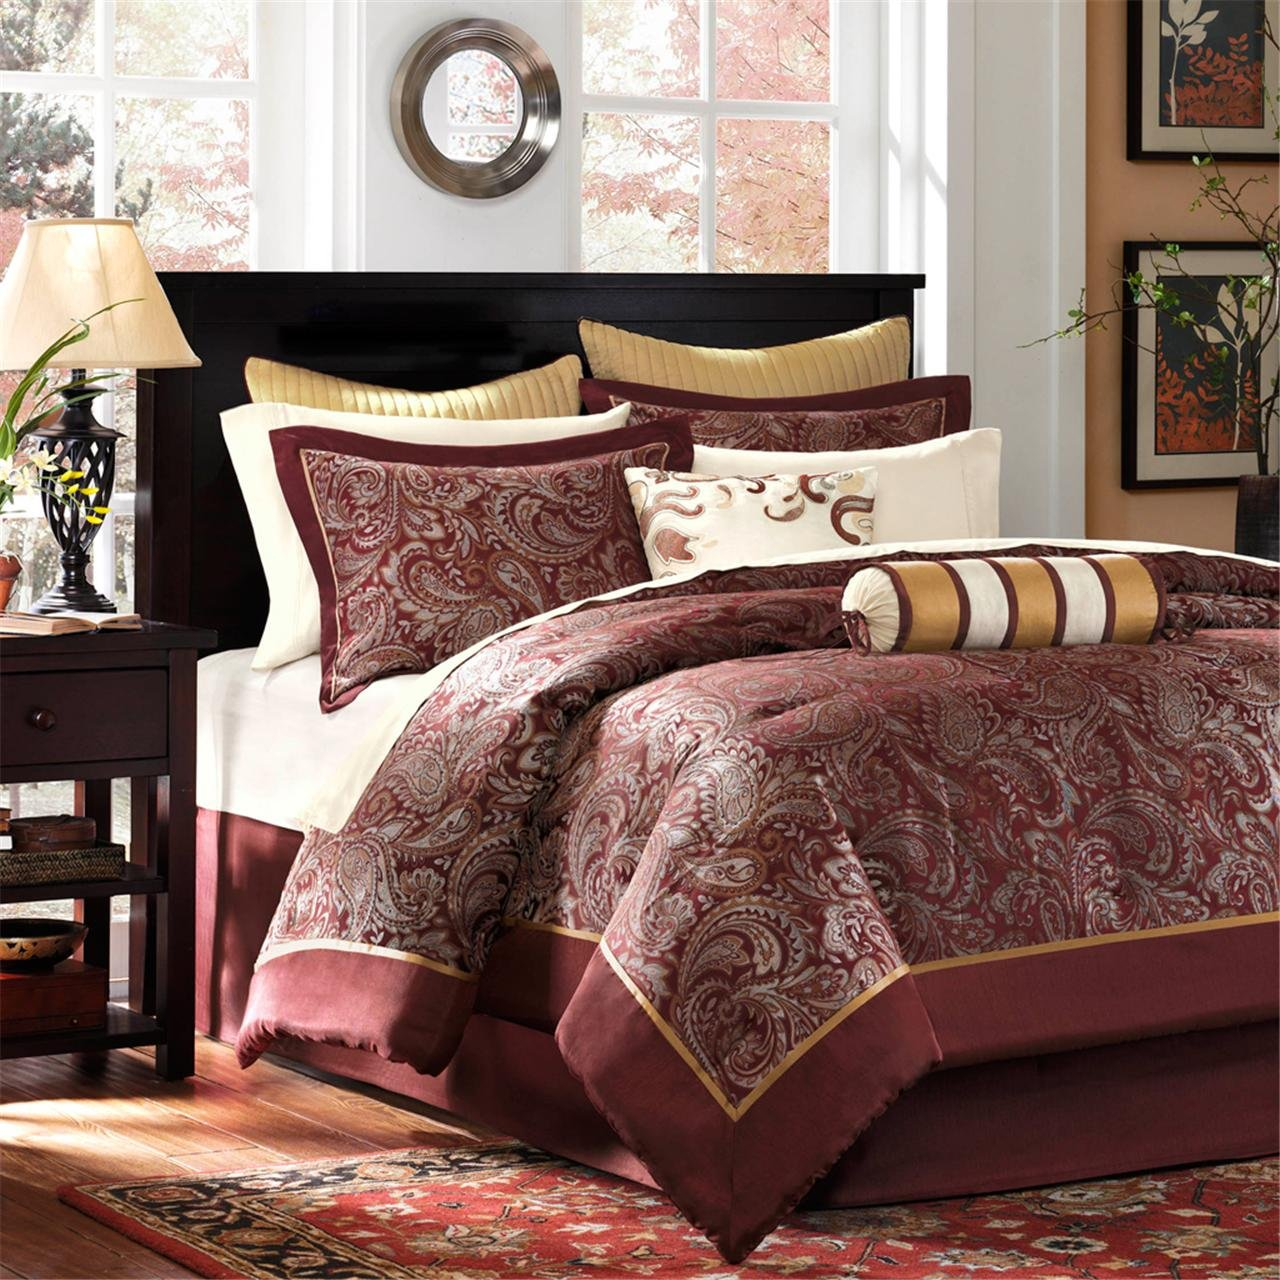 Burgundy , Paisley Jacquard – 12 Pieces Bedding Sets – Ultra Soft Microfiber Bedroom Comforters